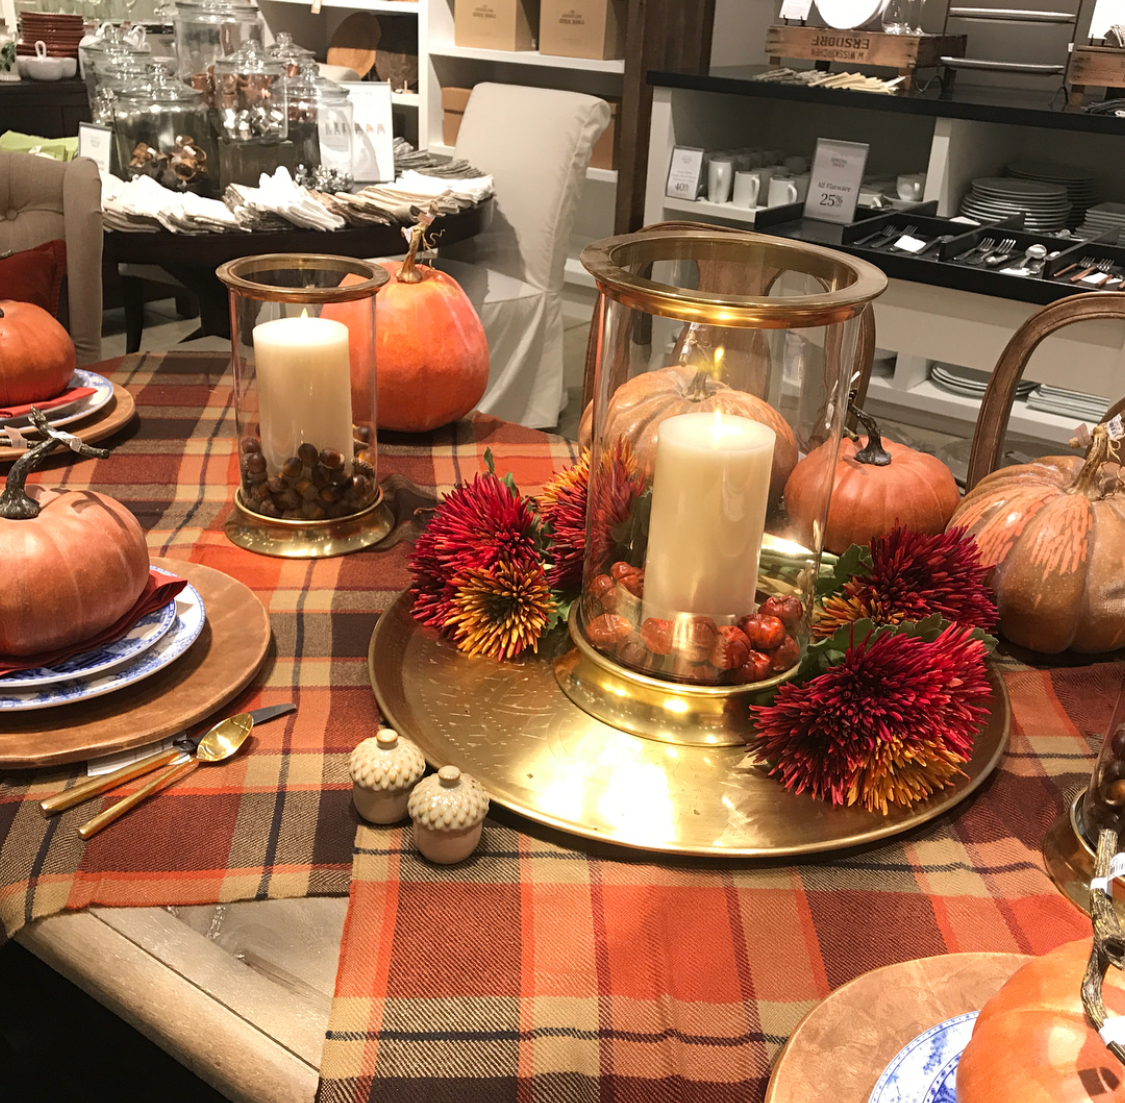 10 gorgeous christmas table decorating ideas 187 photo 2 - For My Centerpiece I Chose A Large Brass Tray And Three Brass Hurricanes The Hurricane In The Center Is The Larger Size And I Flanked It With Two Small